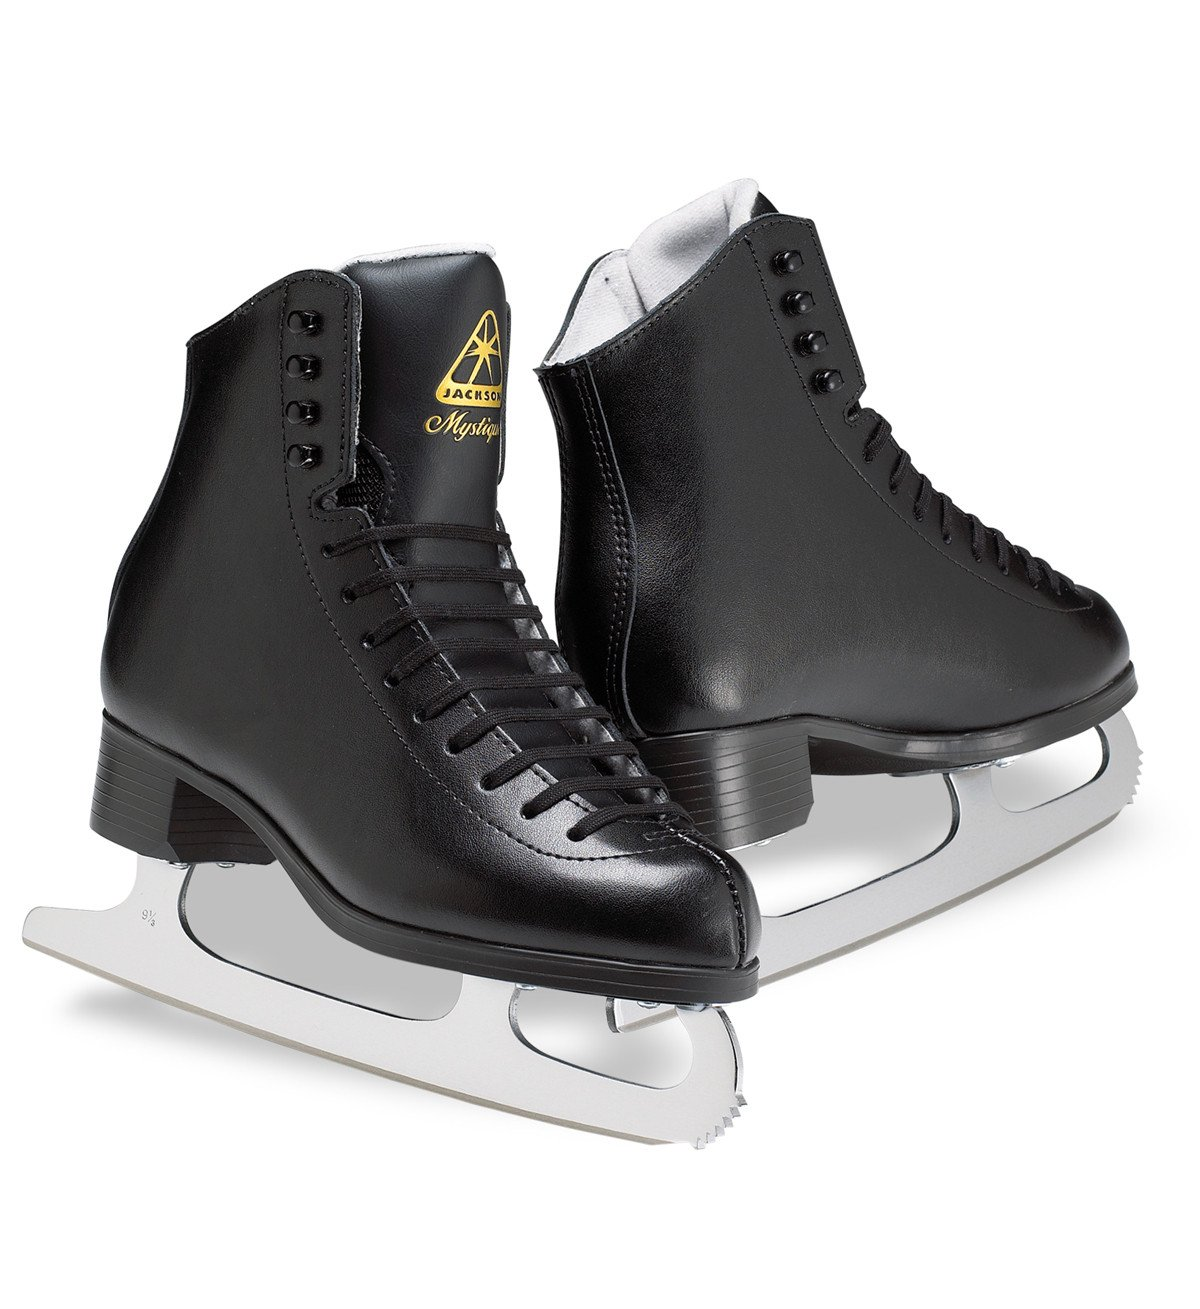 Jackson Ultima Mystique JS1592 / Figure Ice Skates for Men and Boys Width: M/Size: Adult 10.5 by Jackson Ultima